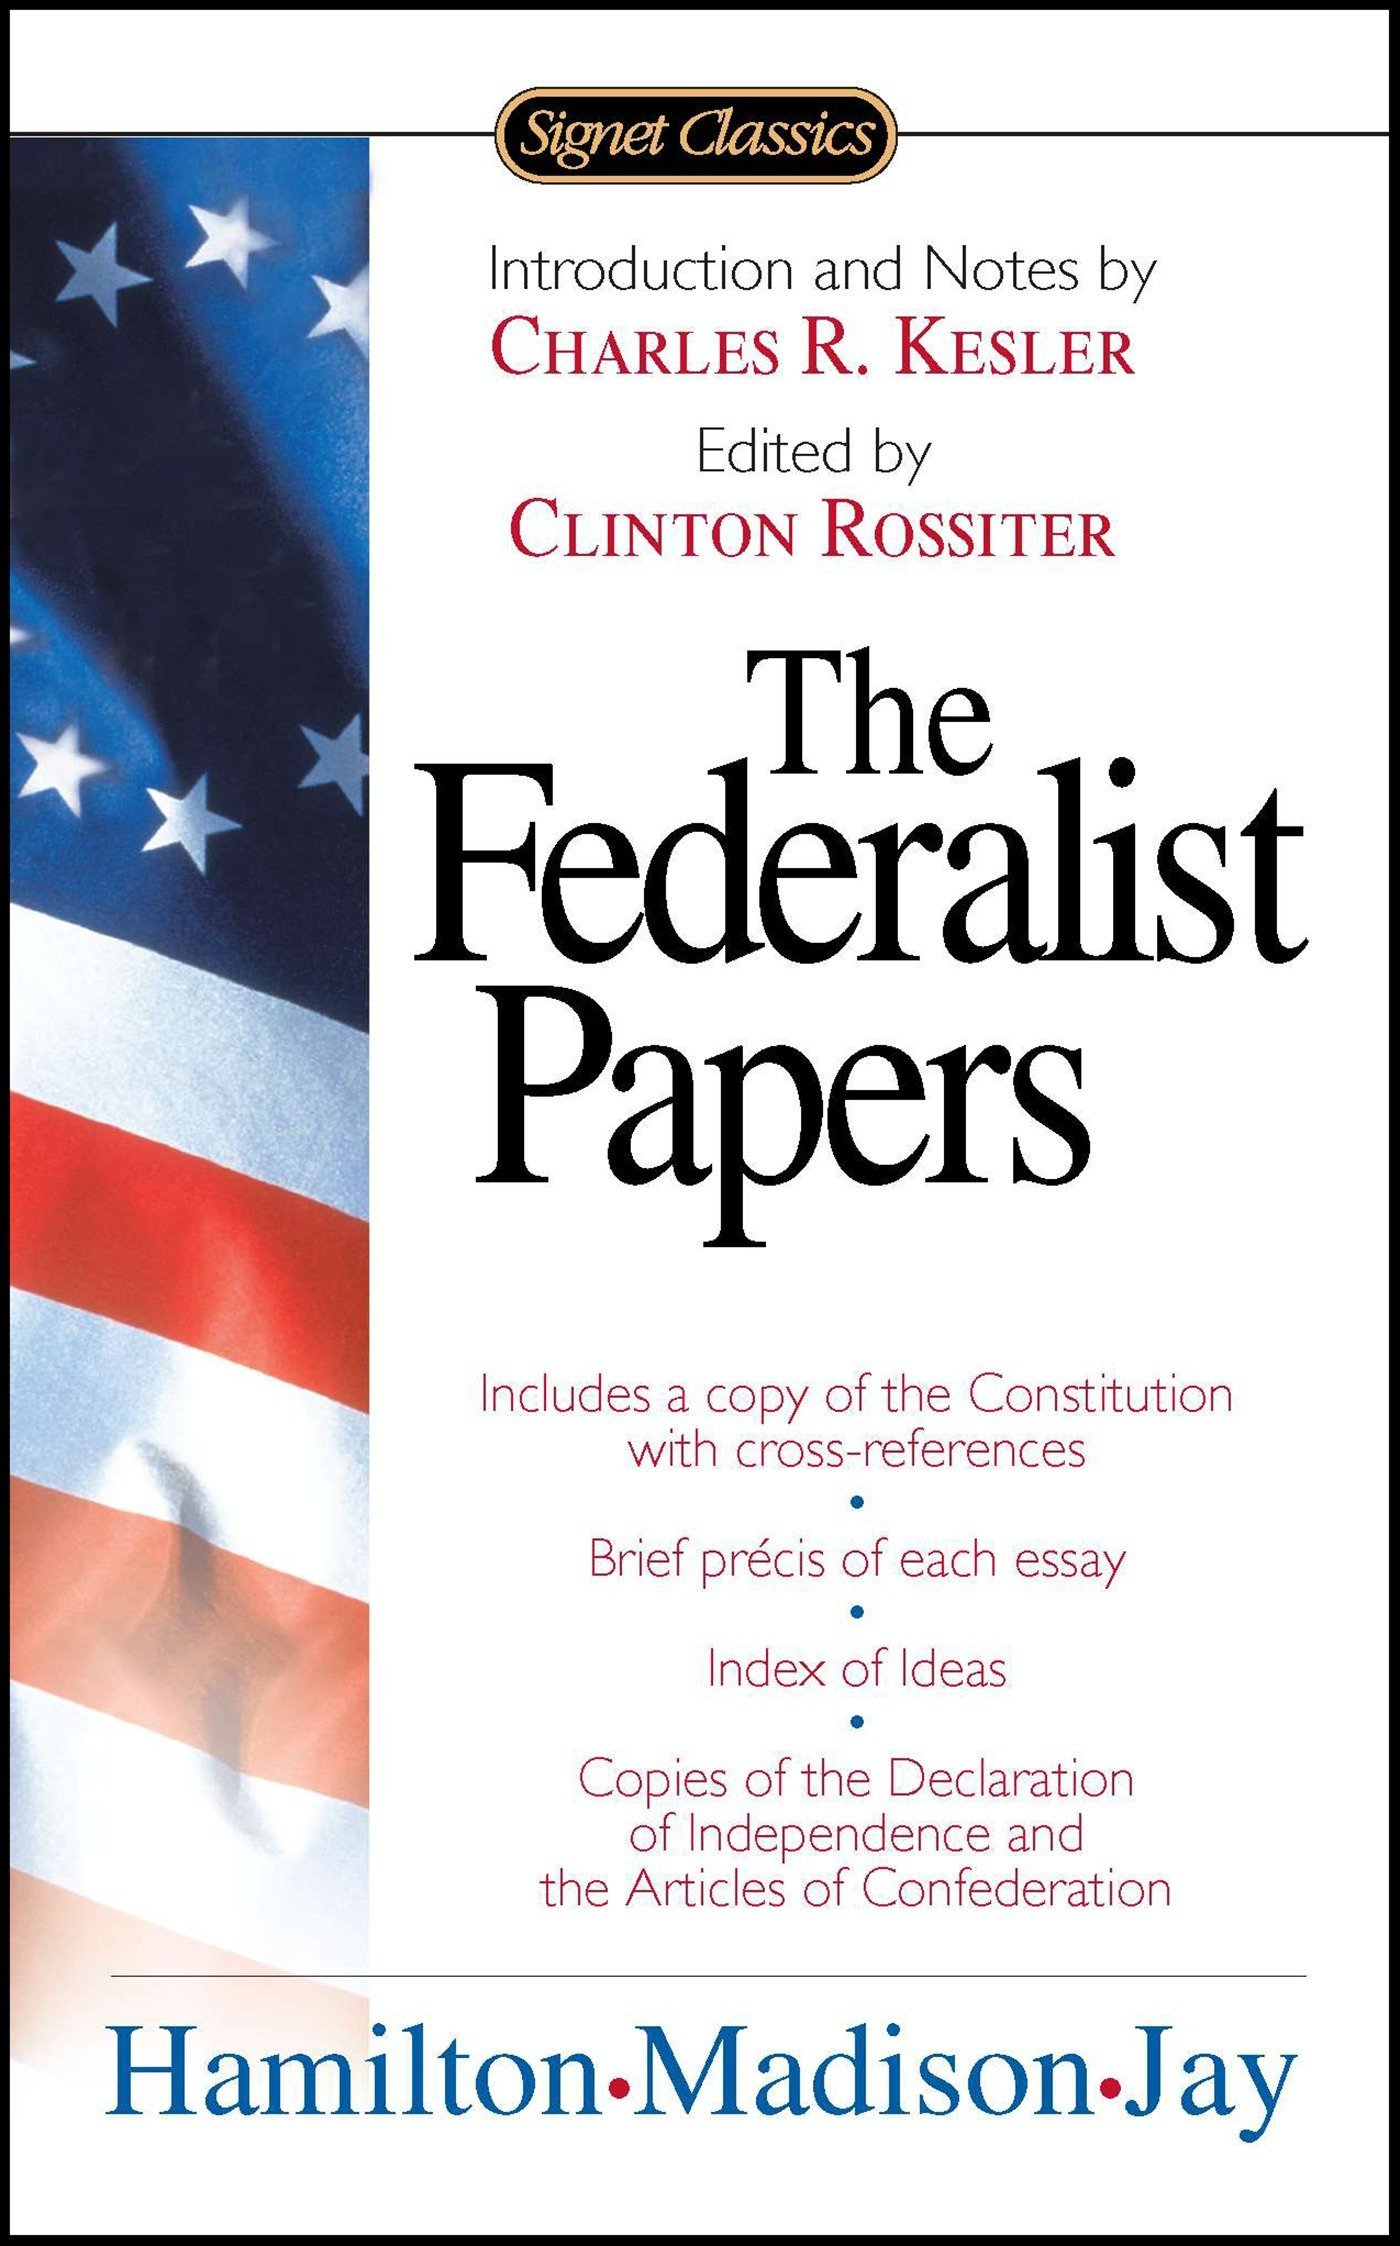 The Federalist Papers (Signet Classics): Amazon.es: Alexander Hamilton, James Madison, John Jay: Libros en idiomas extranjeros